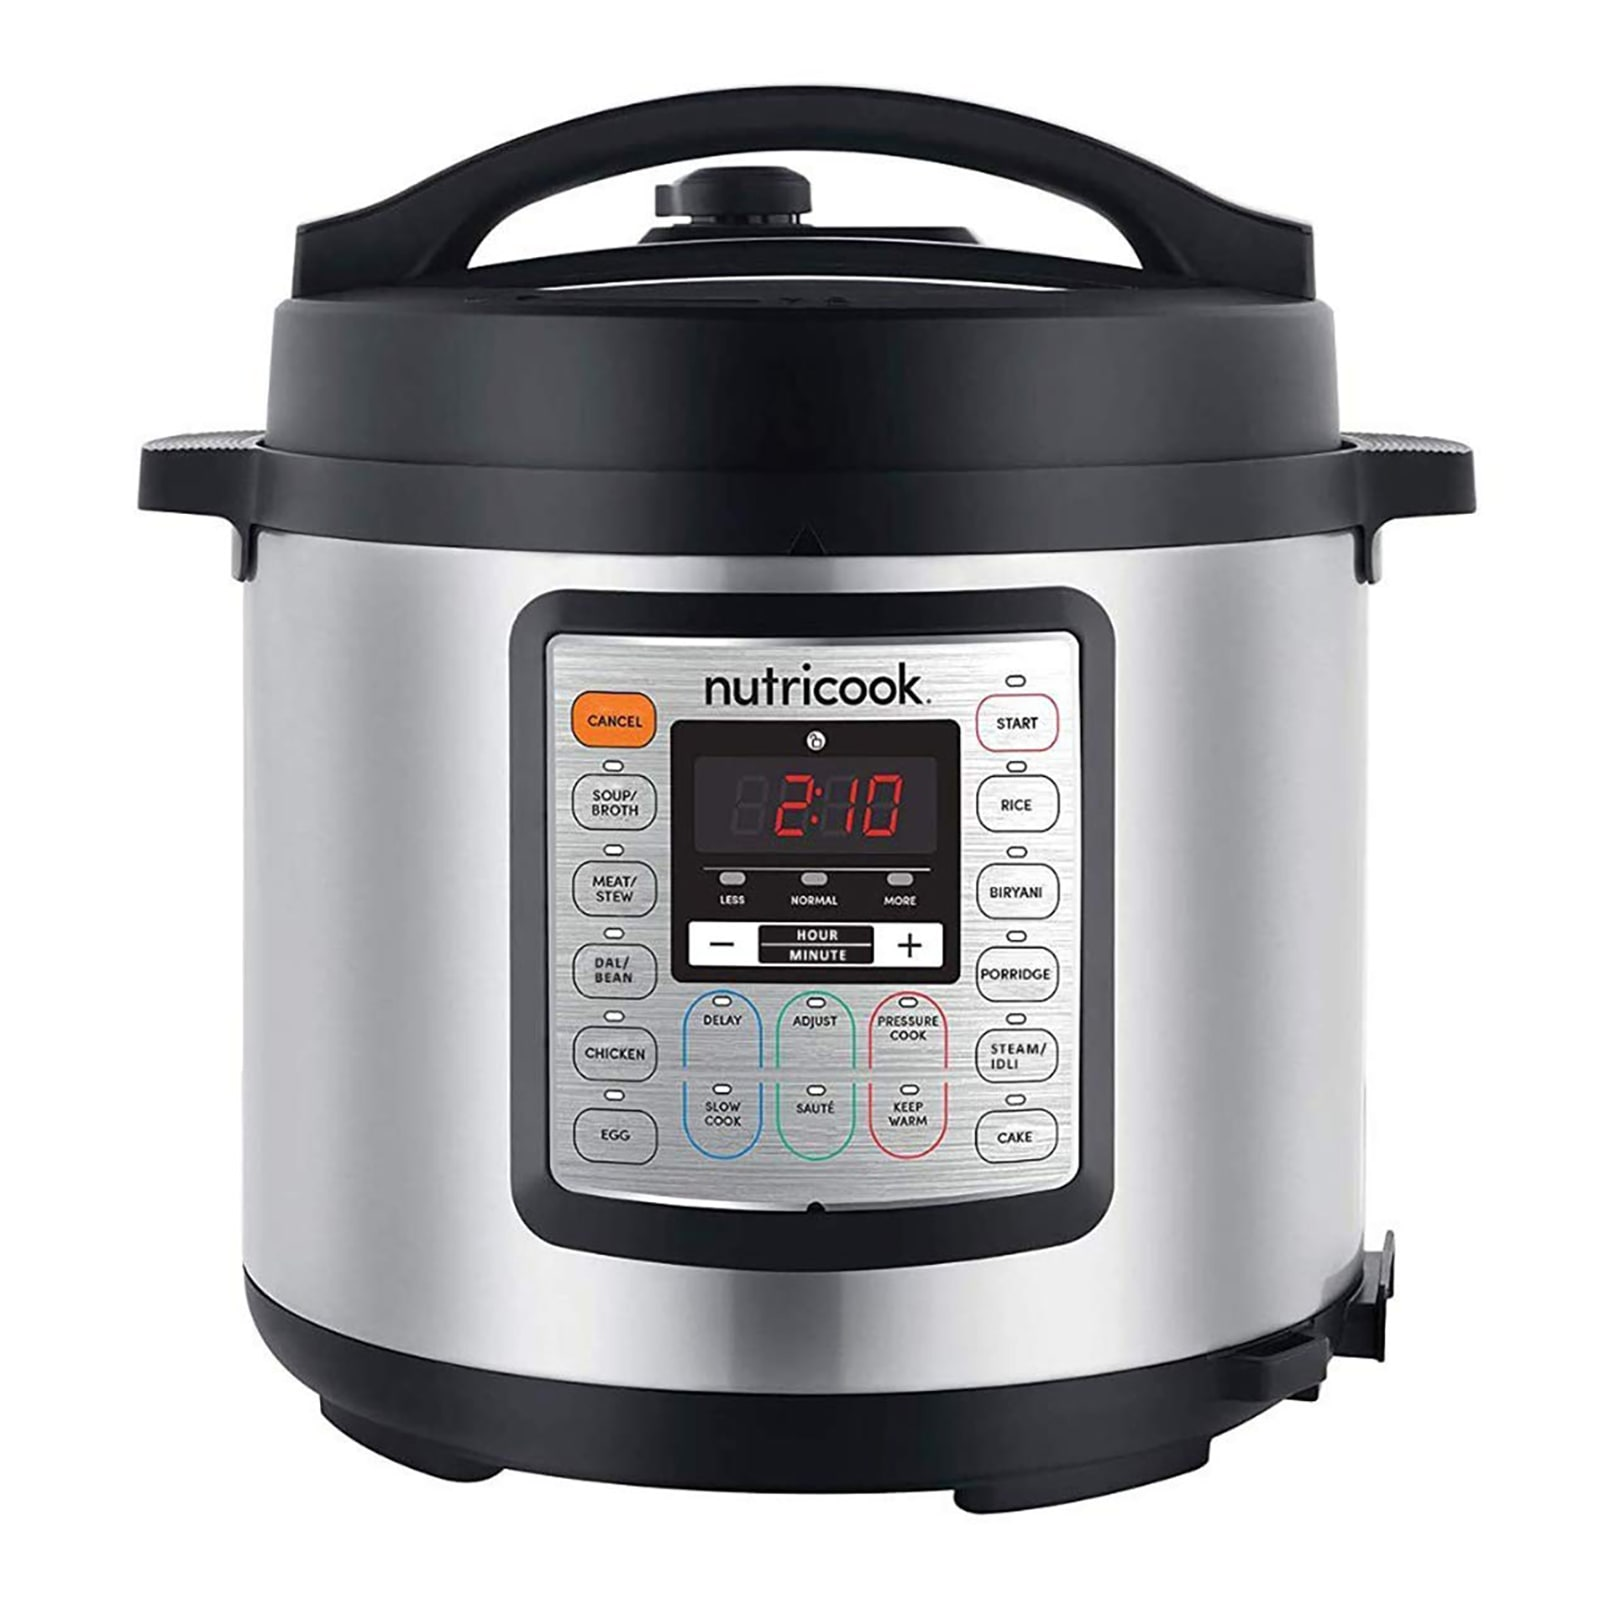 Nutricook by NutriBullet 6 Litres Electric Cooker (9-Appliances in-1, NCSPEK6, Silver)